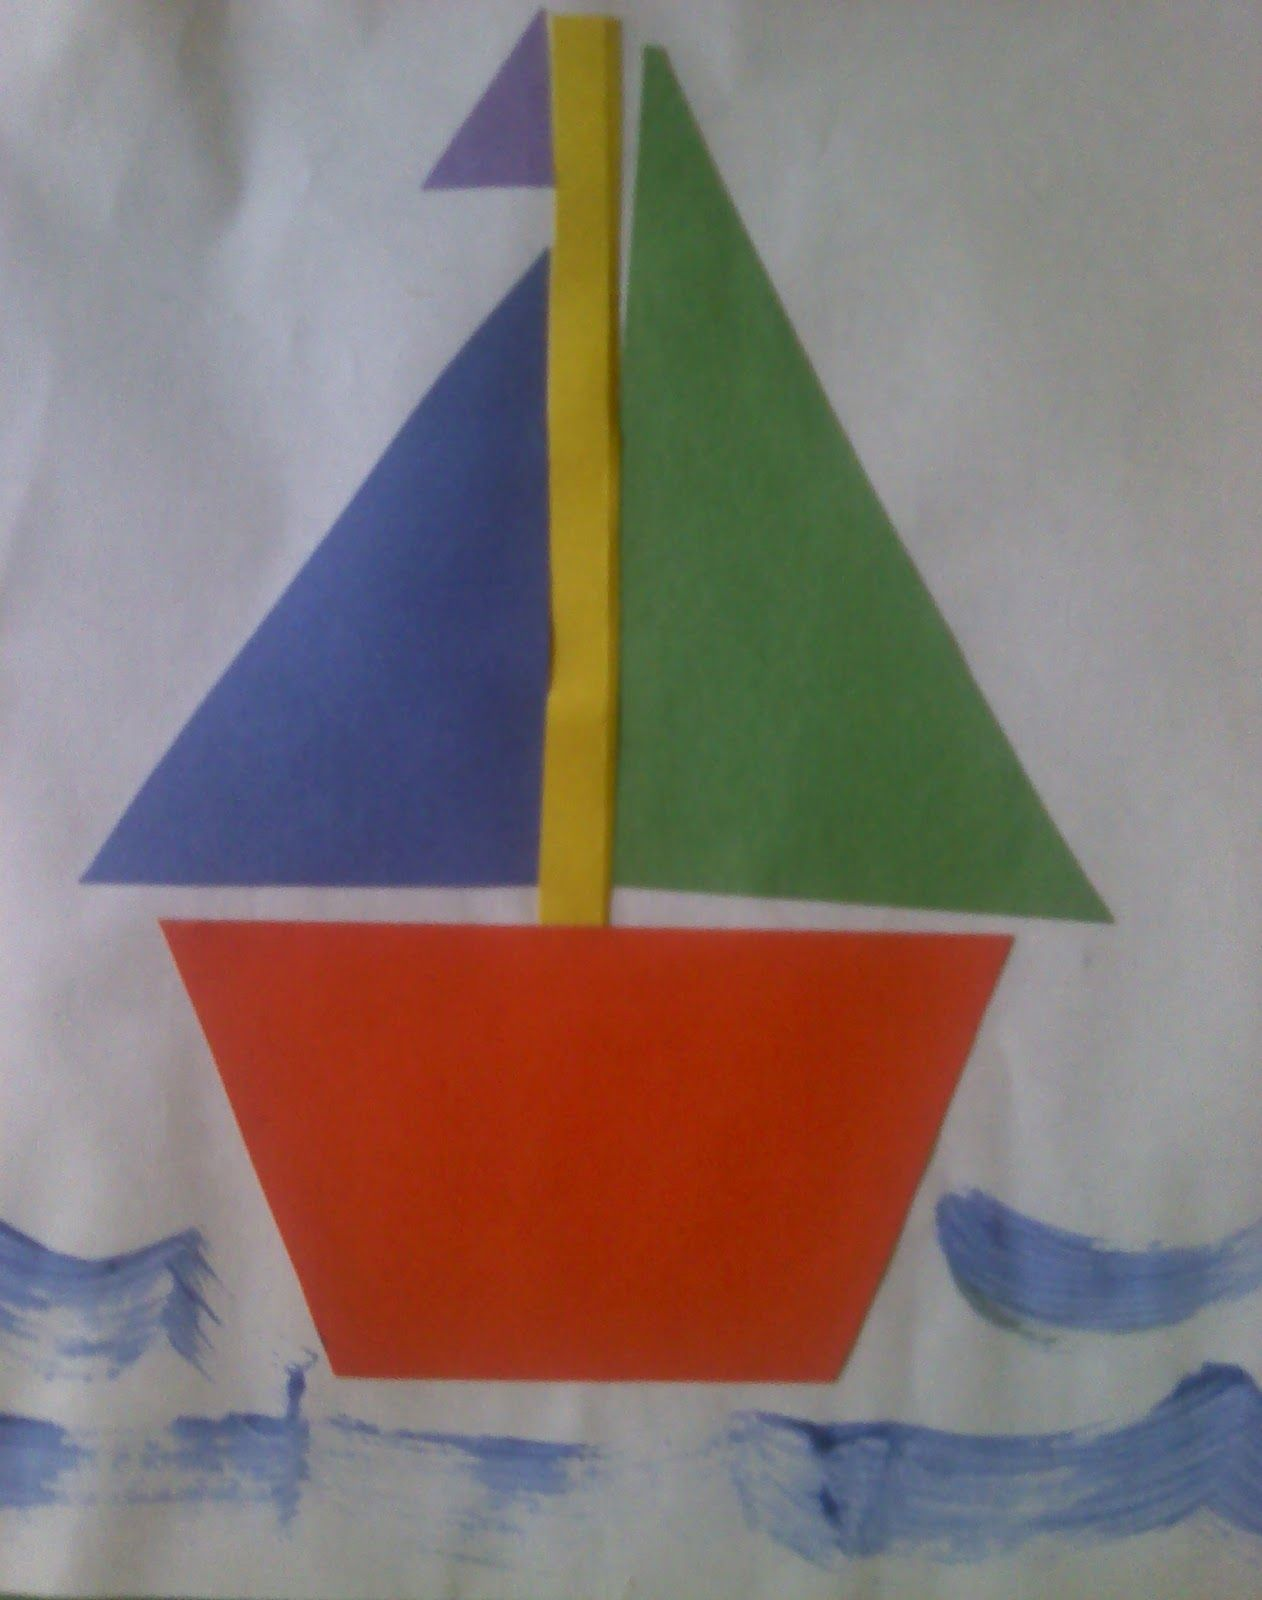 Shape Sailboat Use Shapes To Create This Sail Boat Paint